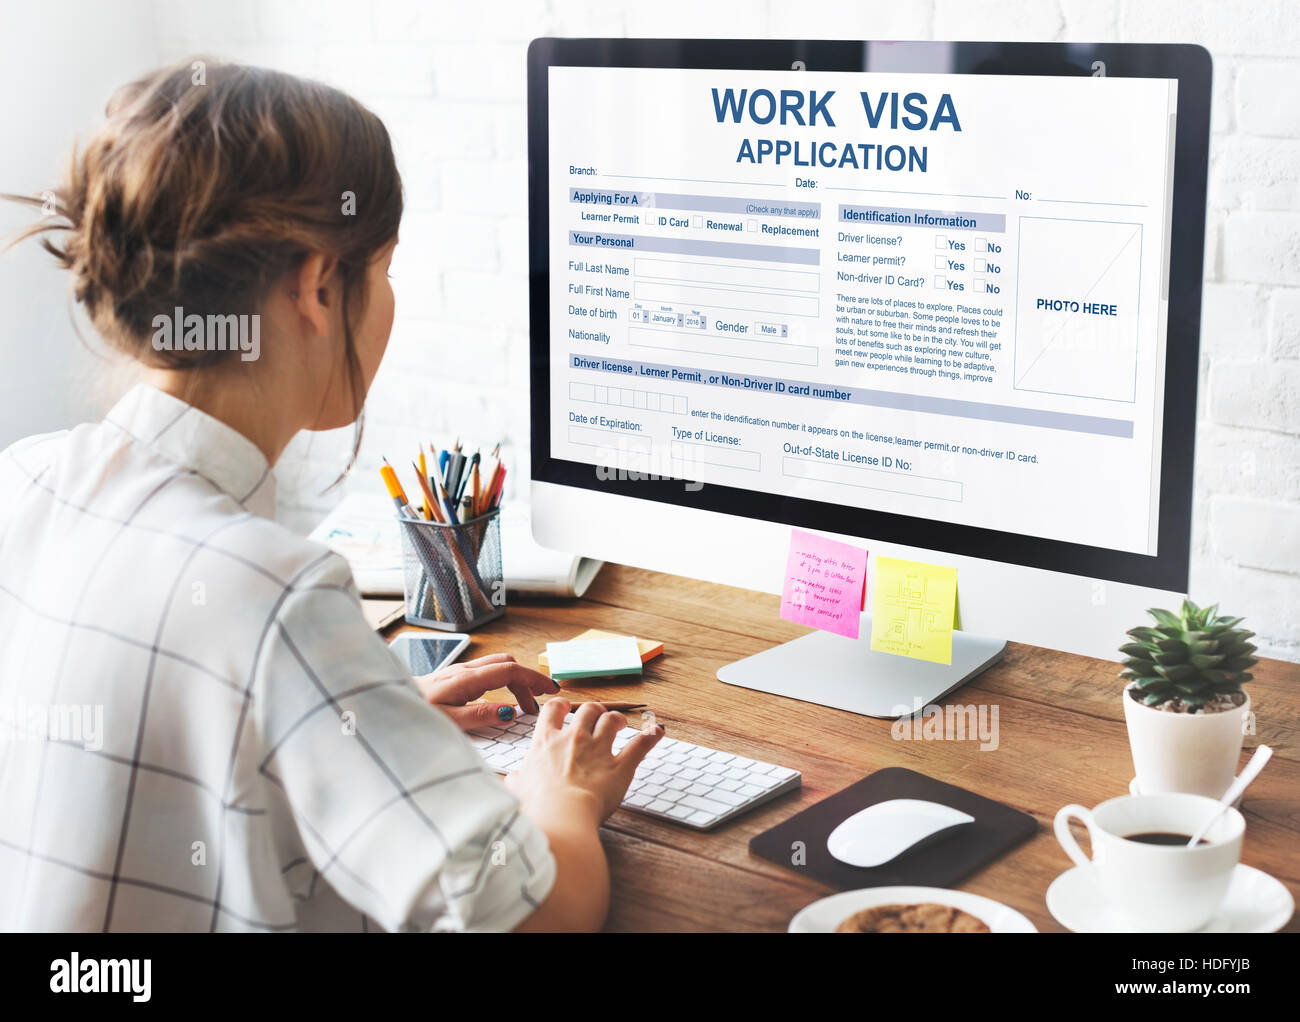 Work visa application law legal concept stock photo 128814067 alamy work visa application law legal concept altavistaventures Image collections